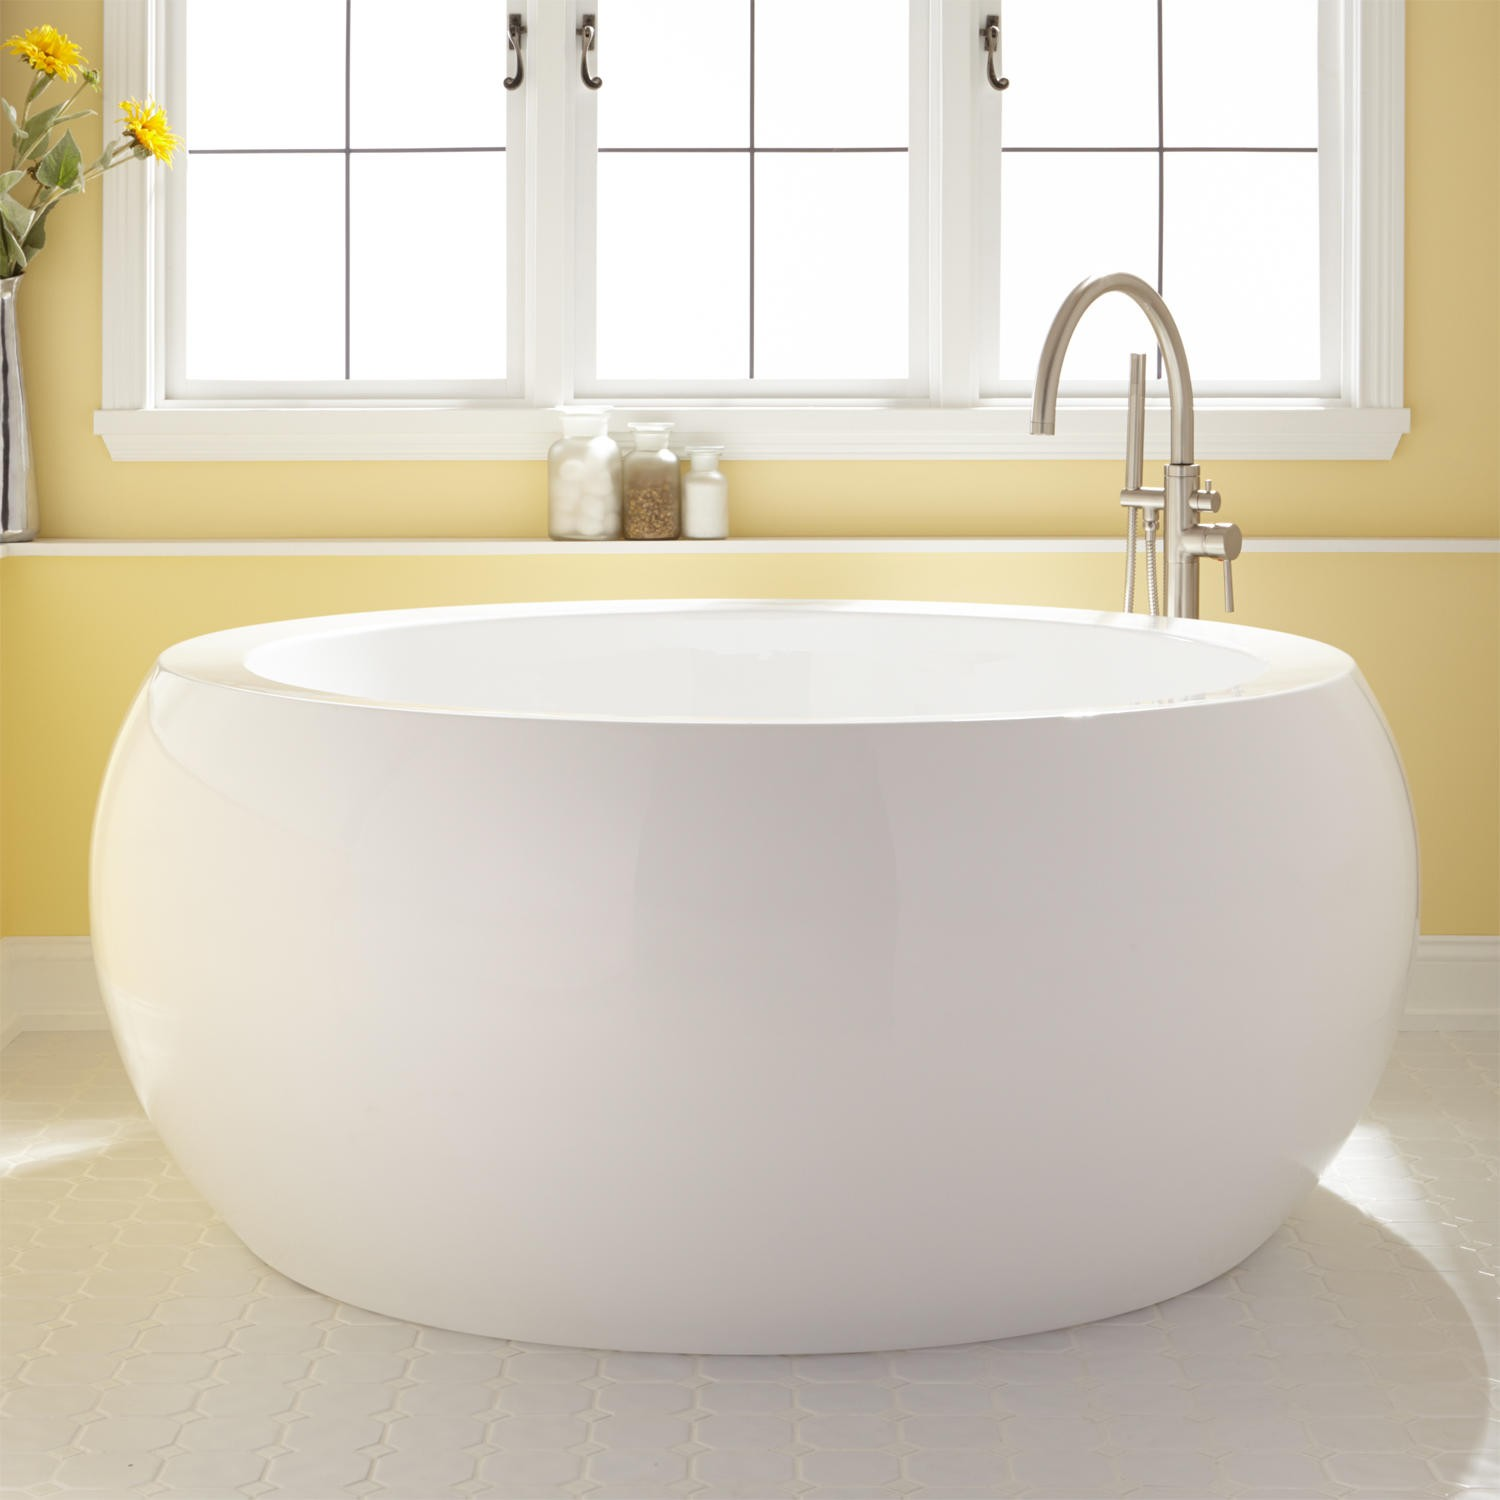 Ofuro Soaking Tubs The Vibe Of An In Your Bathroom Siglo Round Anese Tub